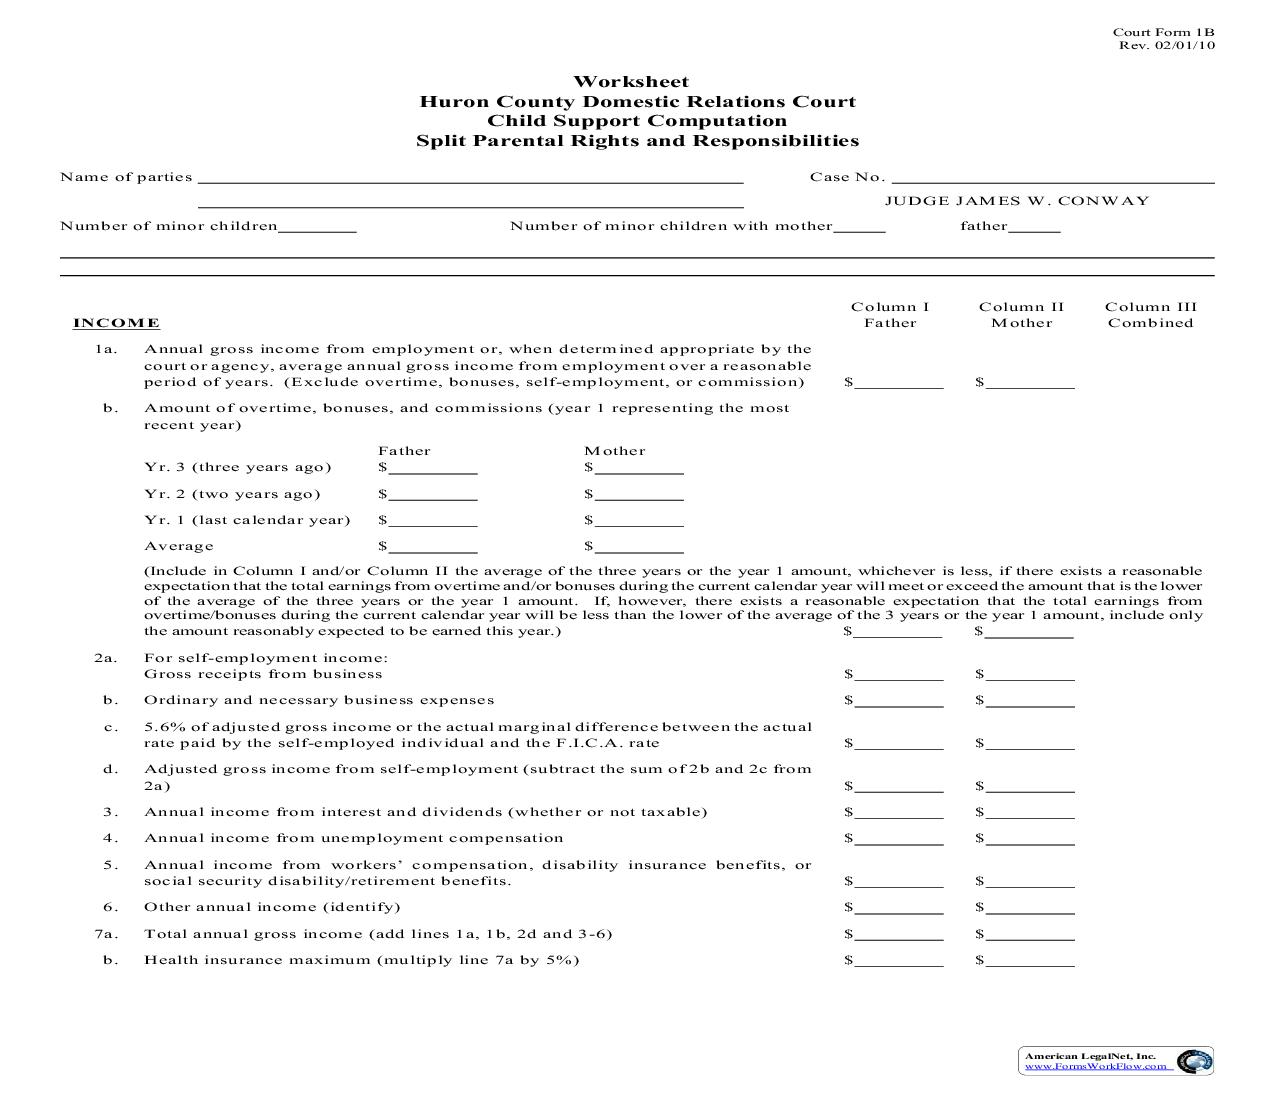 Worksheet Child Support Computation Split Parental Rights And Responsibilities {1B} | Pdf Fpdf Doc Docx | Ohio